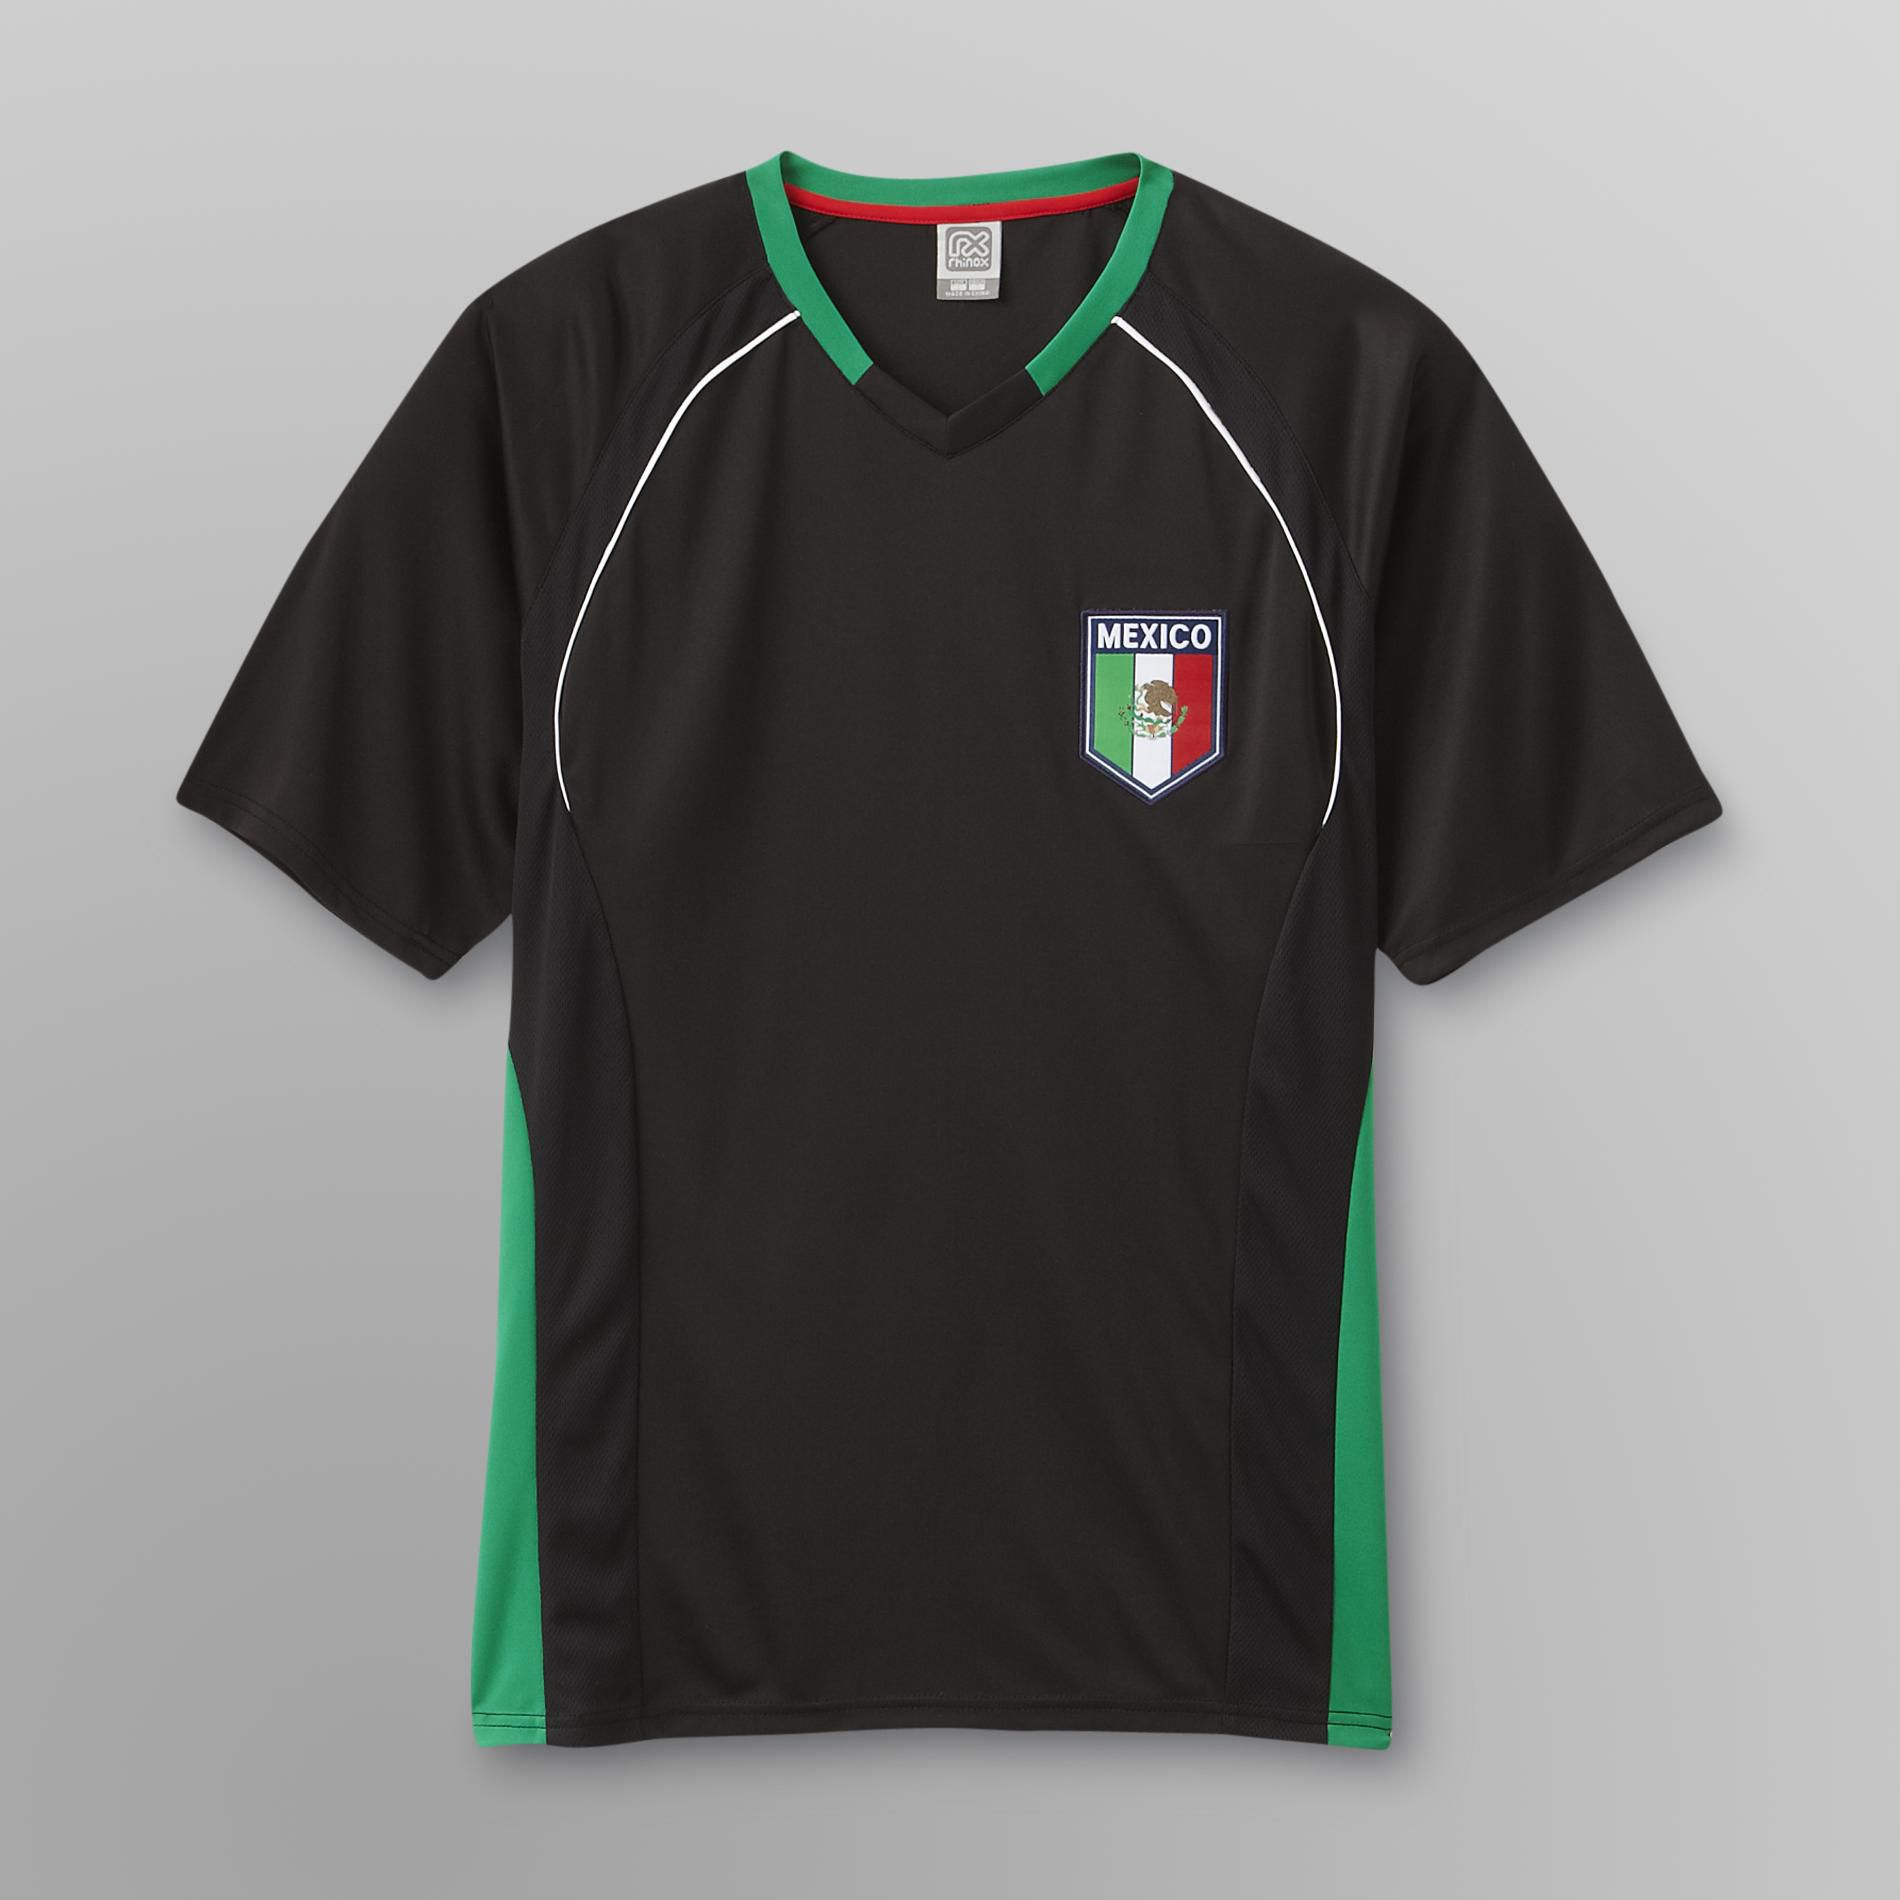 EURO SOCCER Men's Mexico Soccer Jersey at Kmart.com